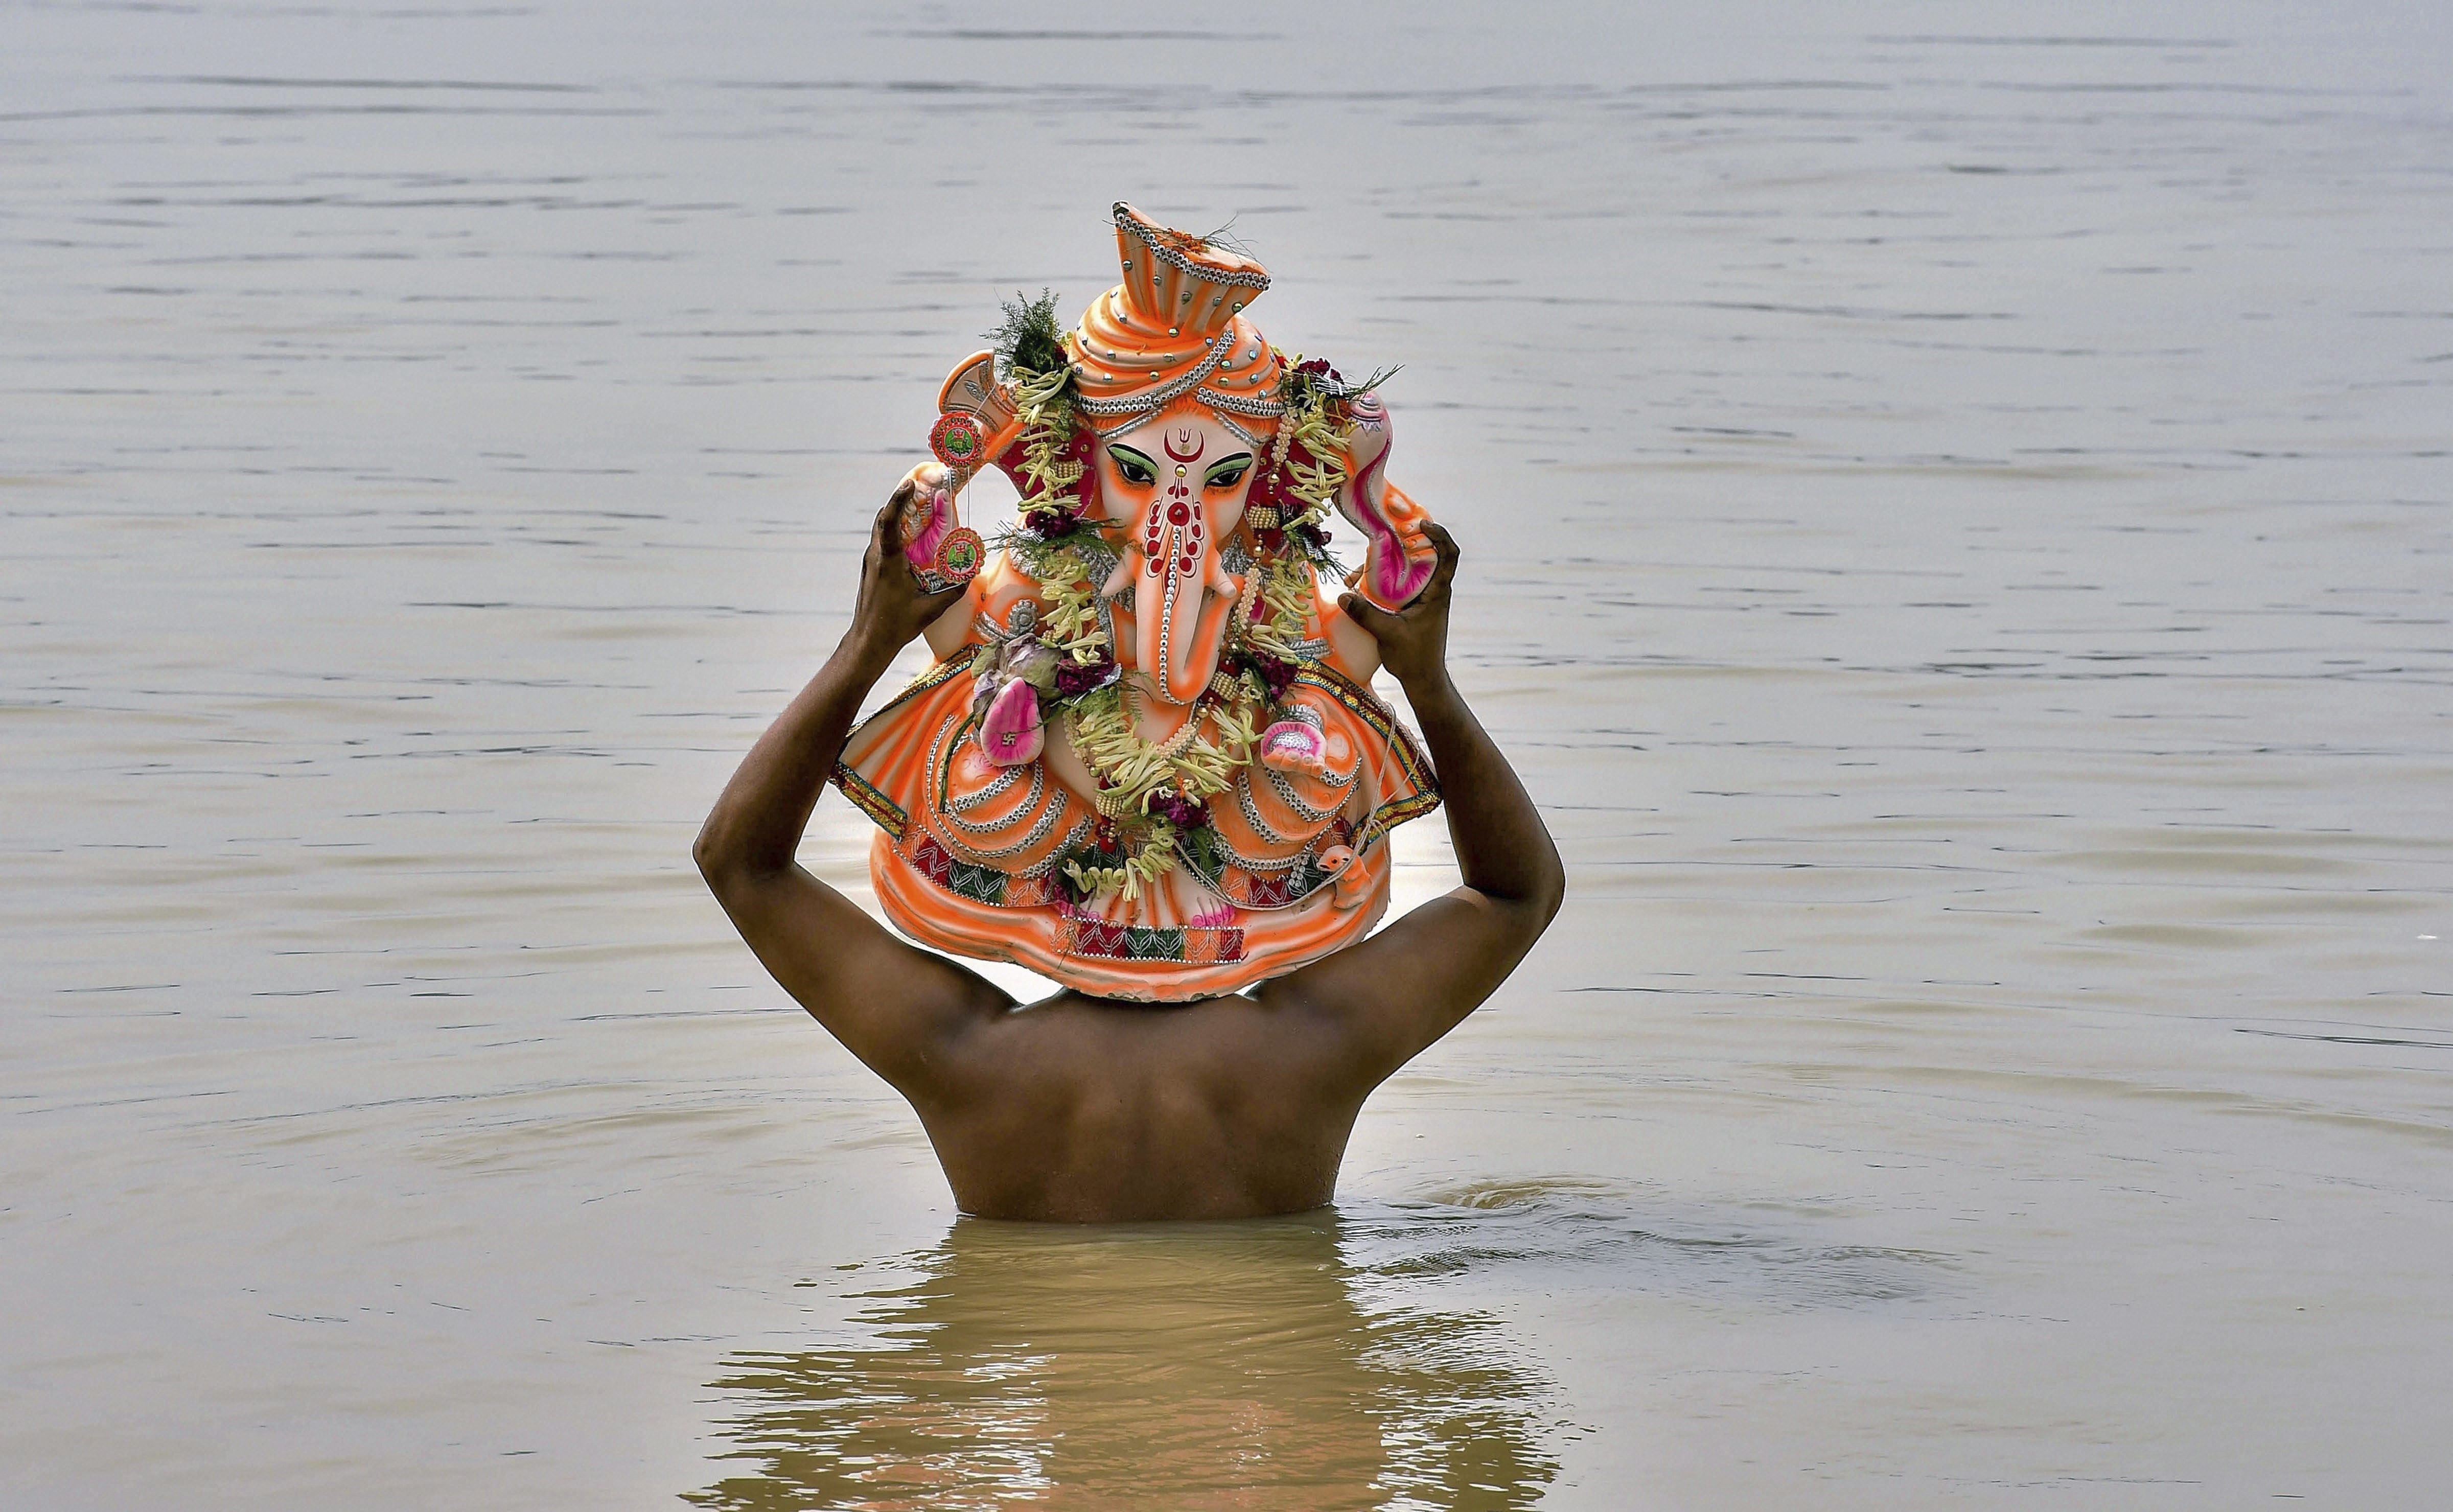 A devotee carries a clay idol of Lord Gamesh on his head to immerse in the Ganga River a day after Ganesh Chaturthi celebrations, in Kolkata - PTI